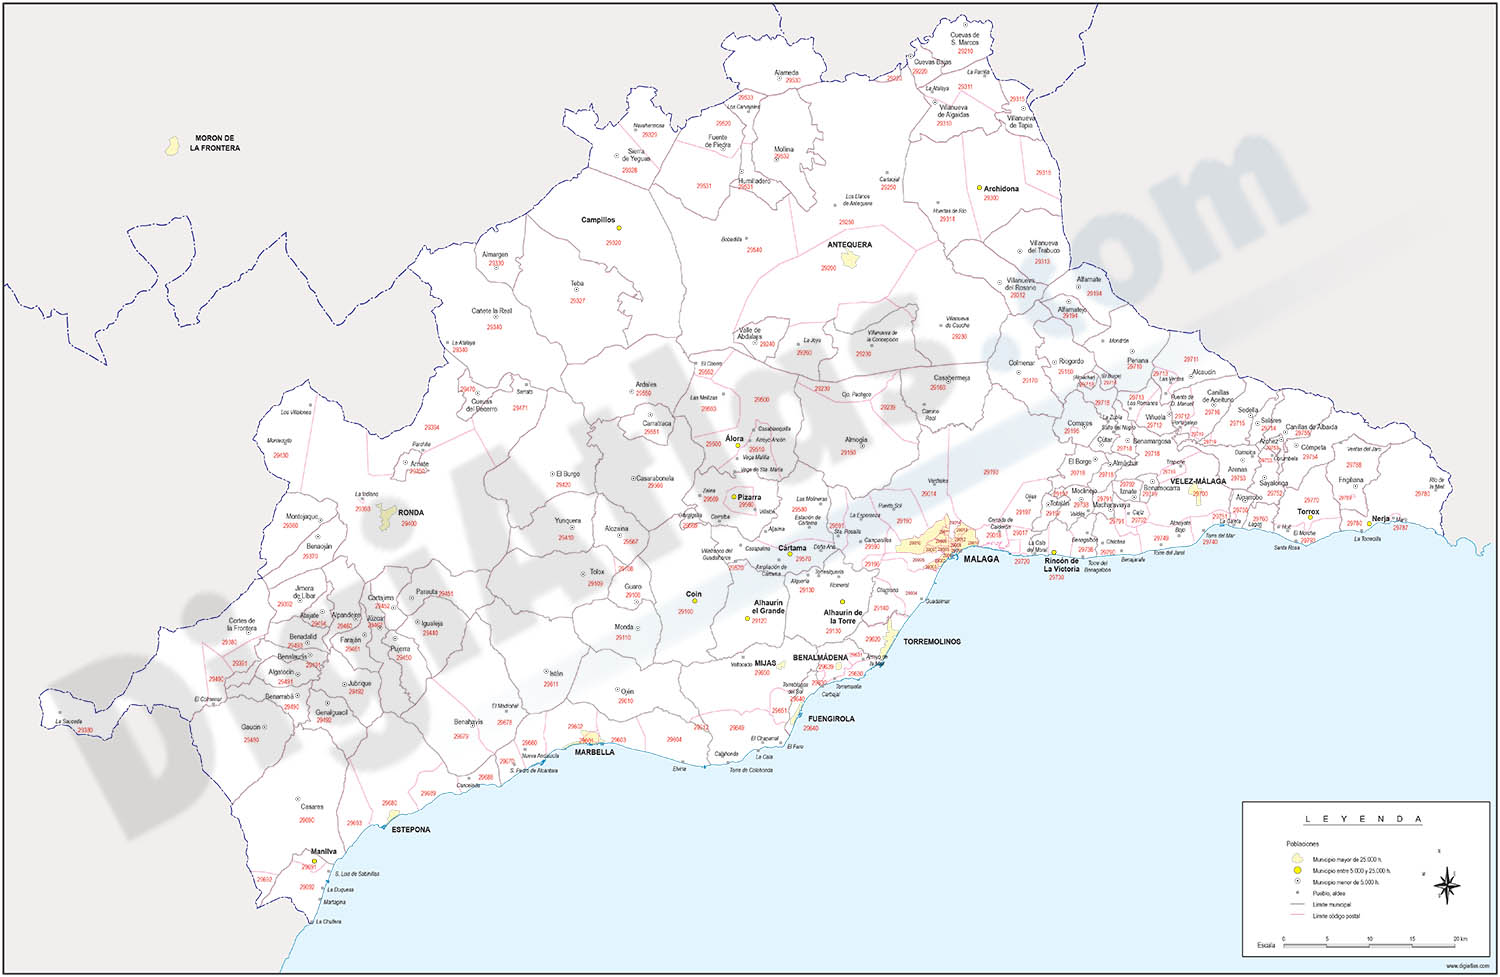 Map of Malaga province with municipalities and postal codes